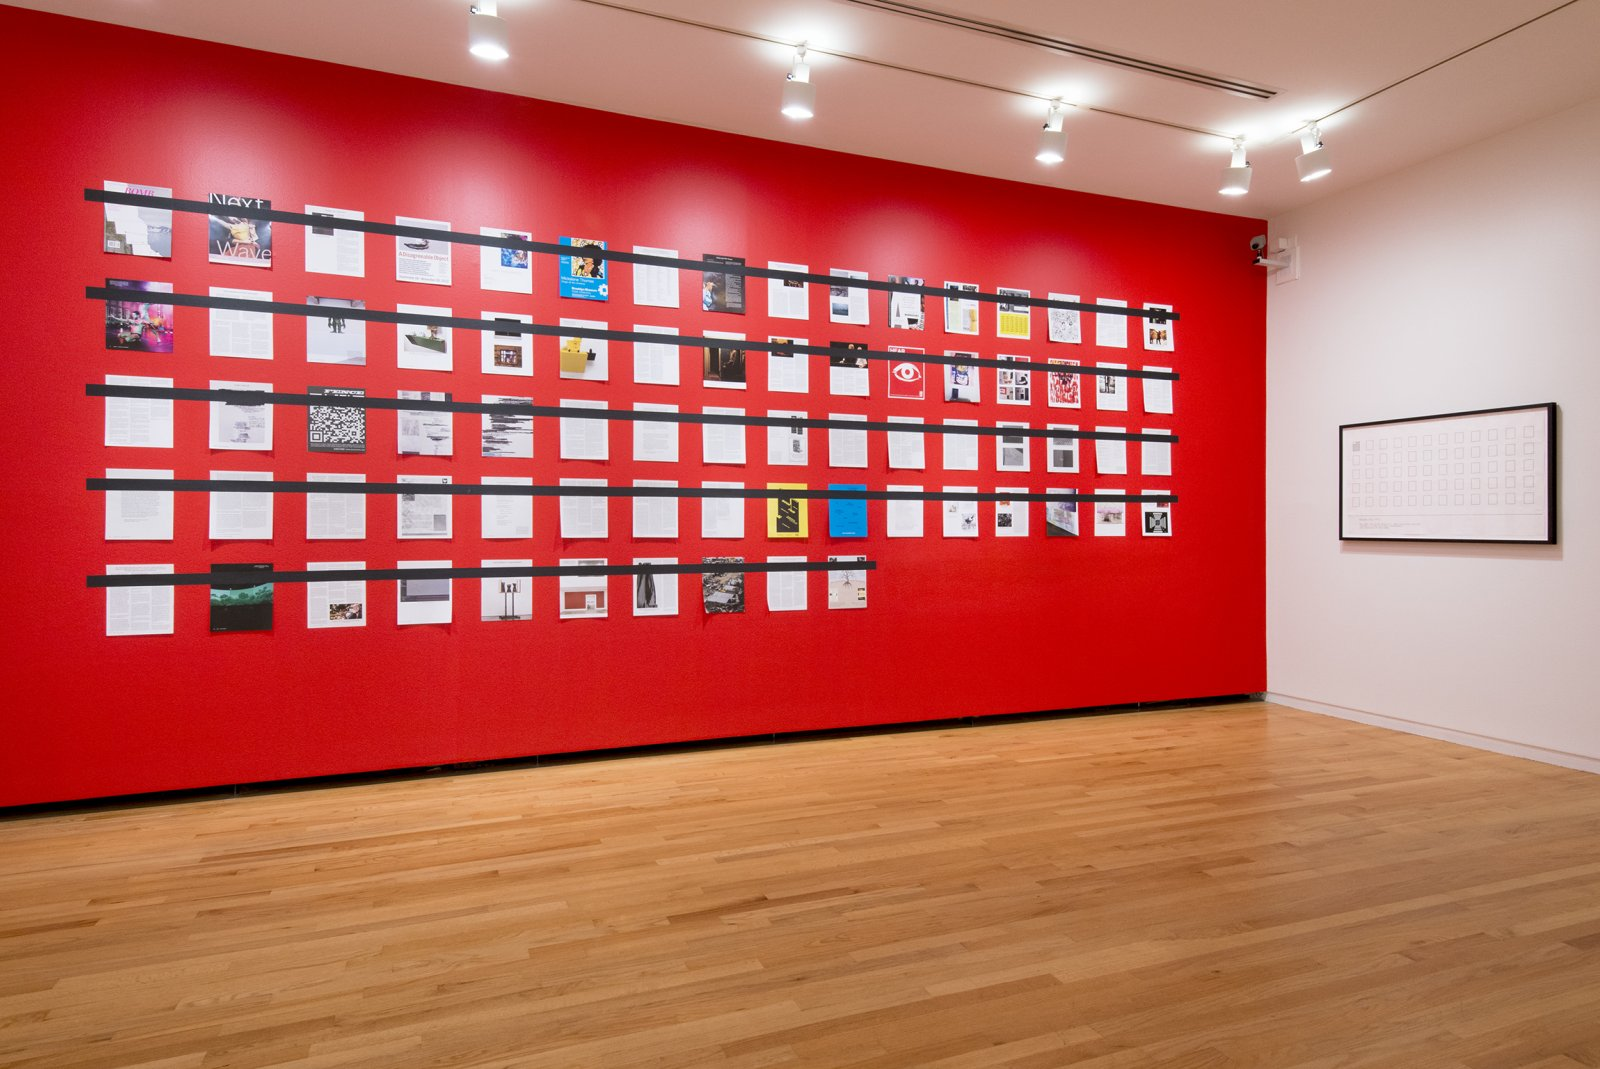 Ian Wallace, Magazine Piece, 2012, magazine pages, tape, painted wall, 108 x 232 in. (274 x 589 cm). Installation view, A Literature of Images, Vancouver Art Gallery, 2012 by Ian Wallace